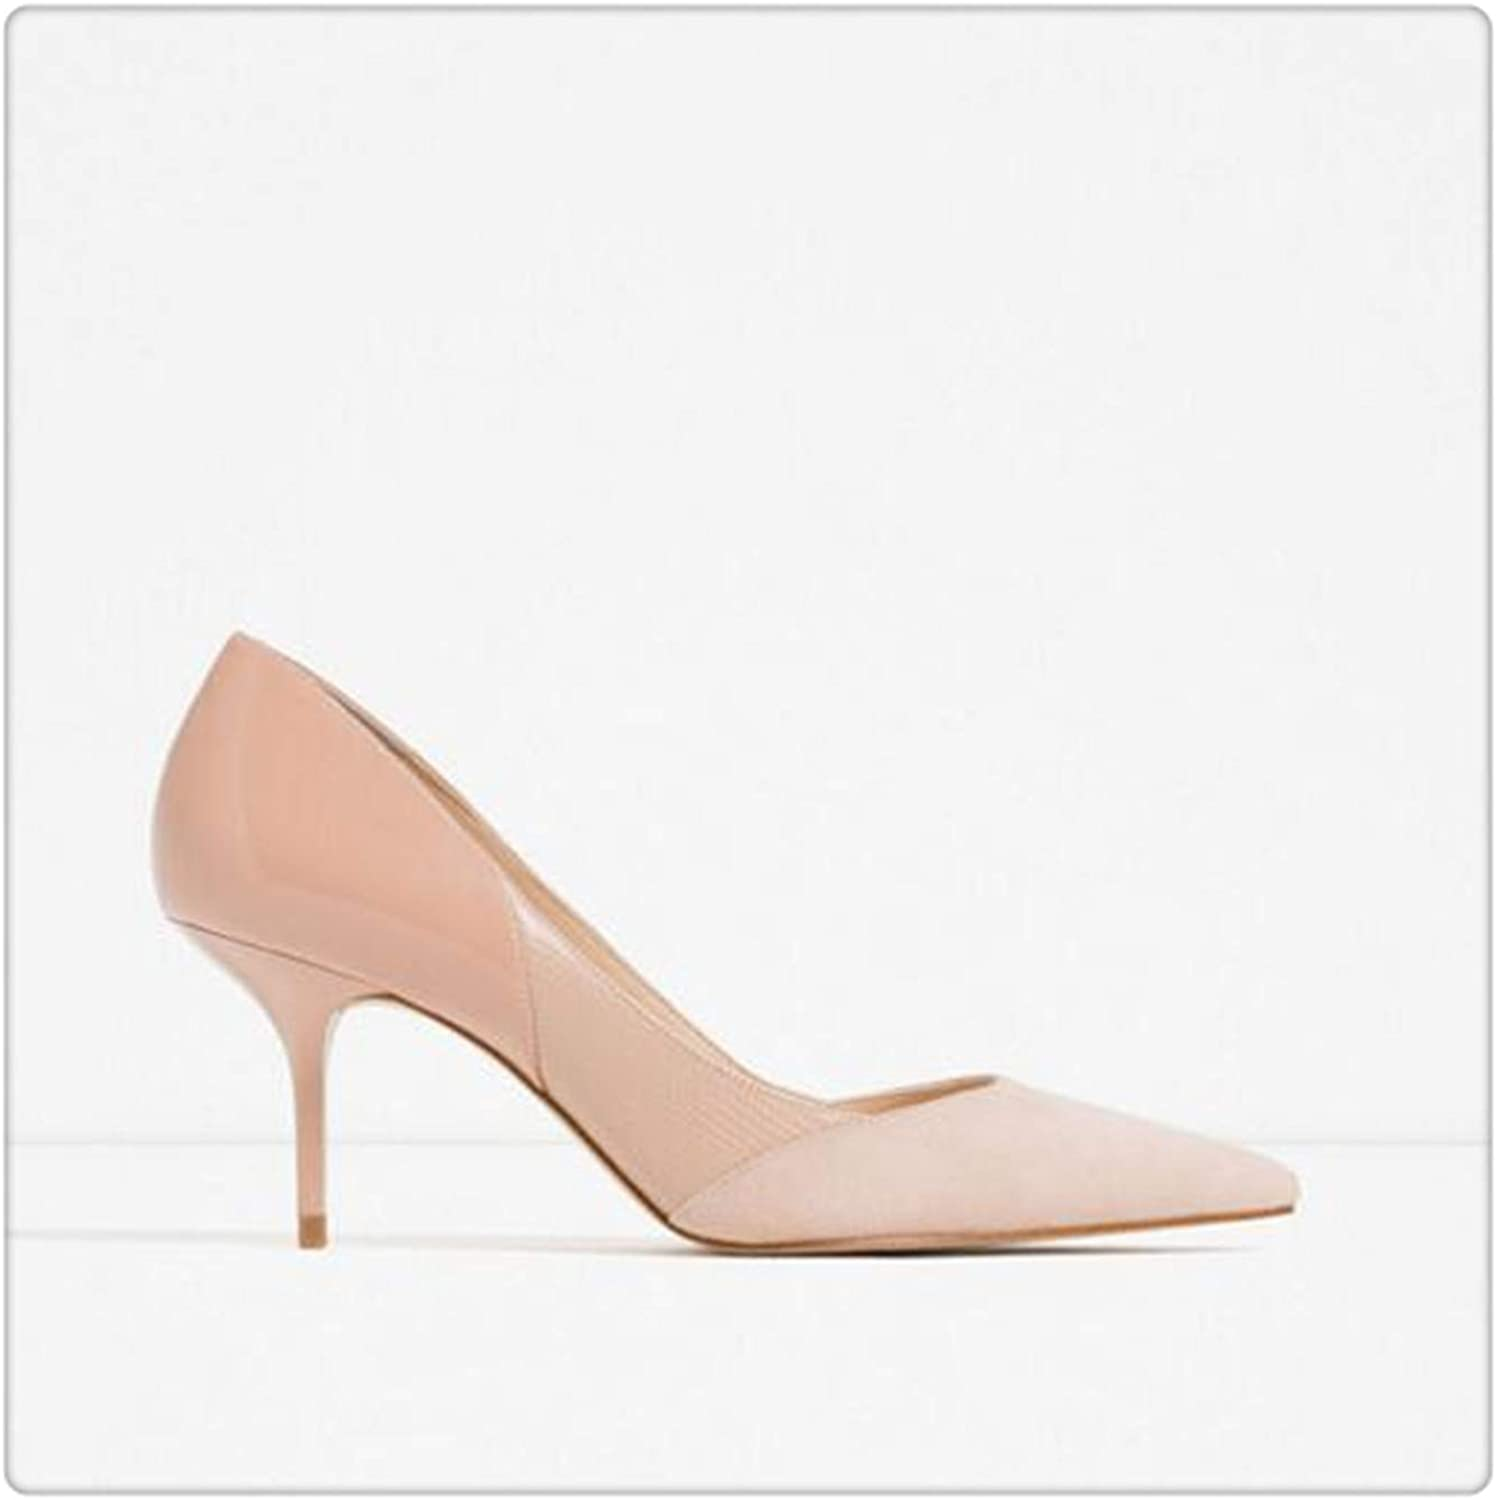 Mixed color Classic Women High Heels shoes 7cm Female Simple Women Pumps Heels Dress shoes Small Size 34-40 Apricot 8